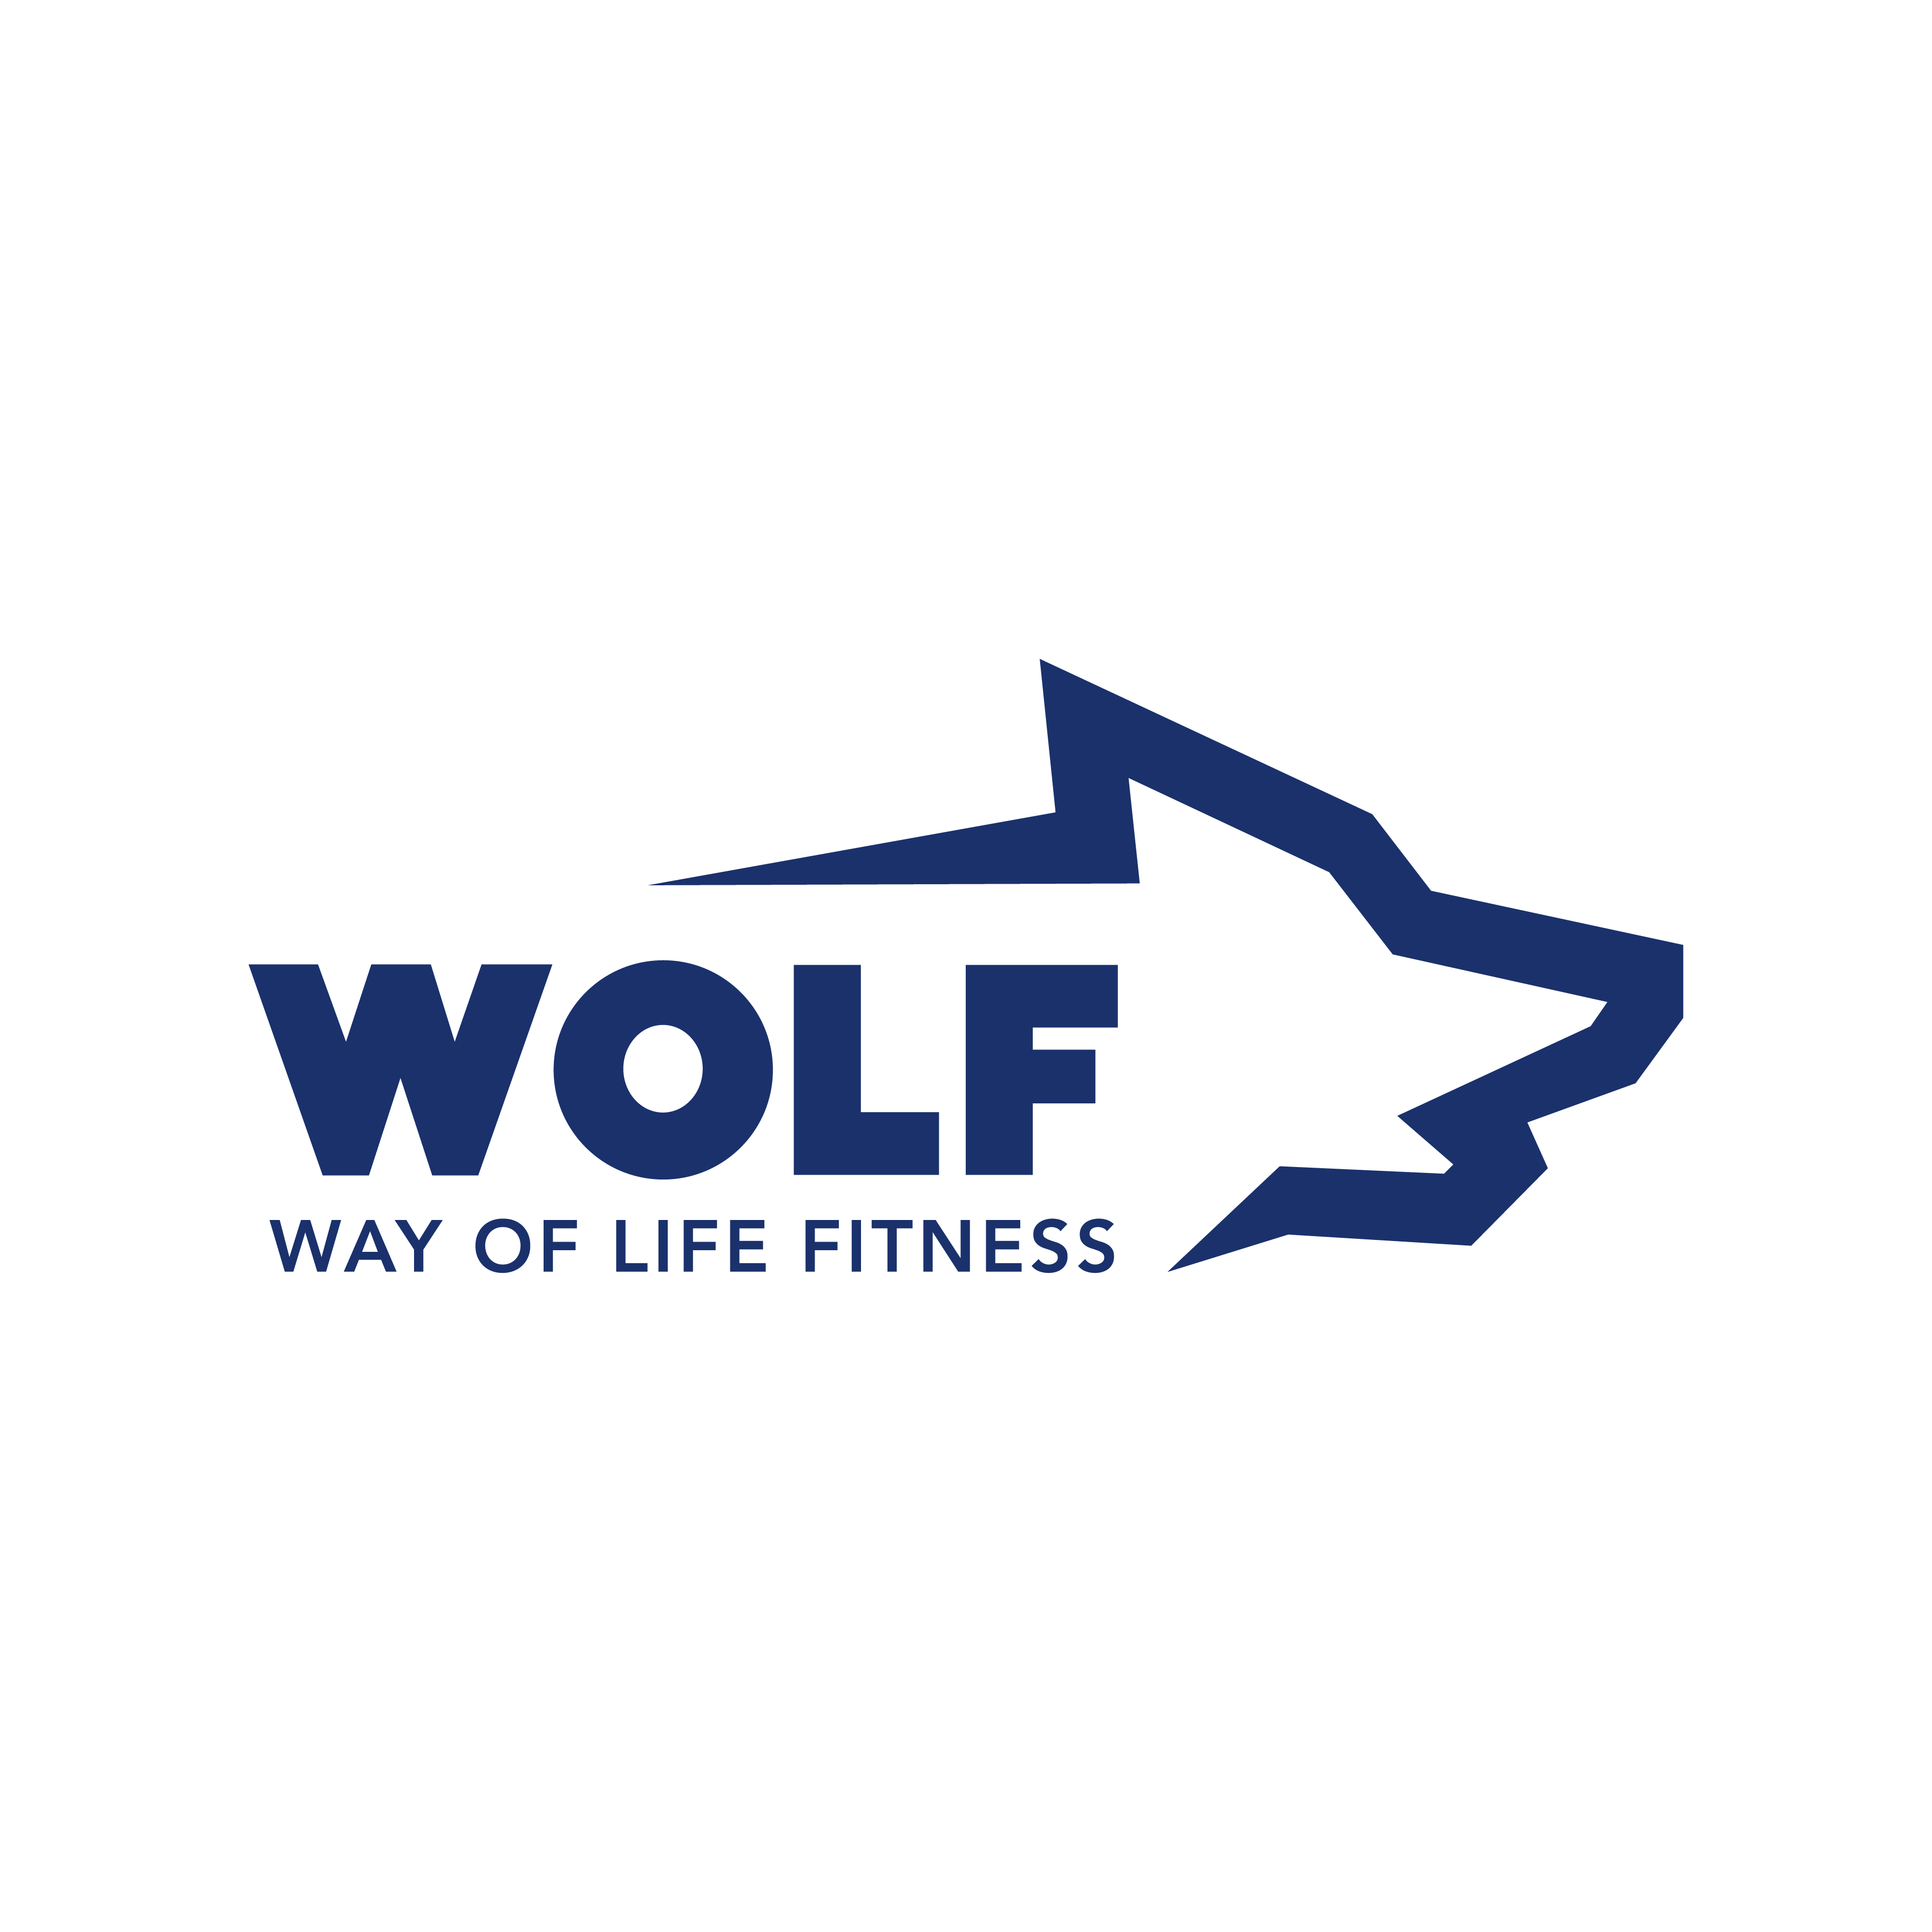 Way of Life Fitness